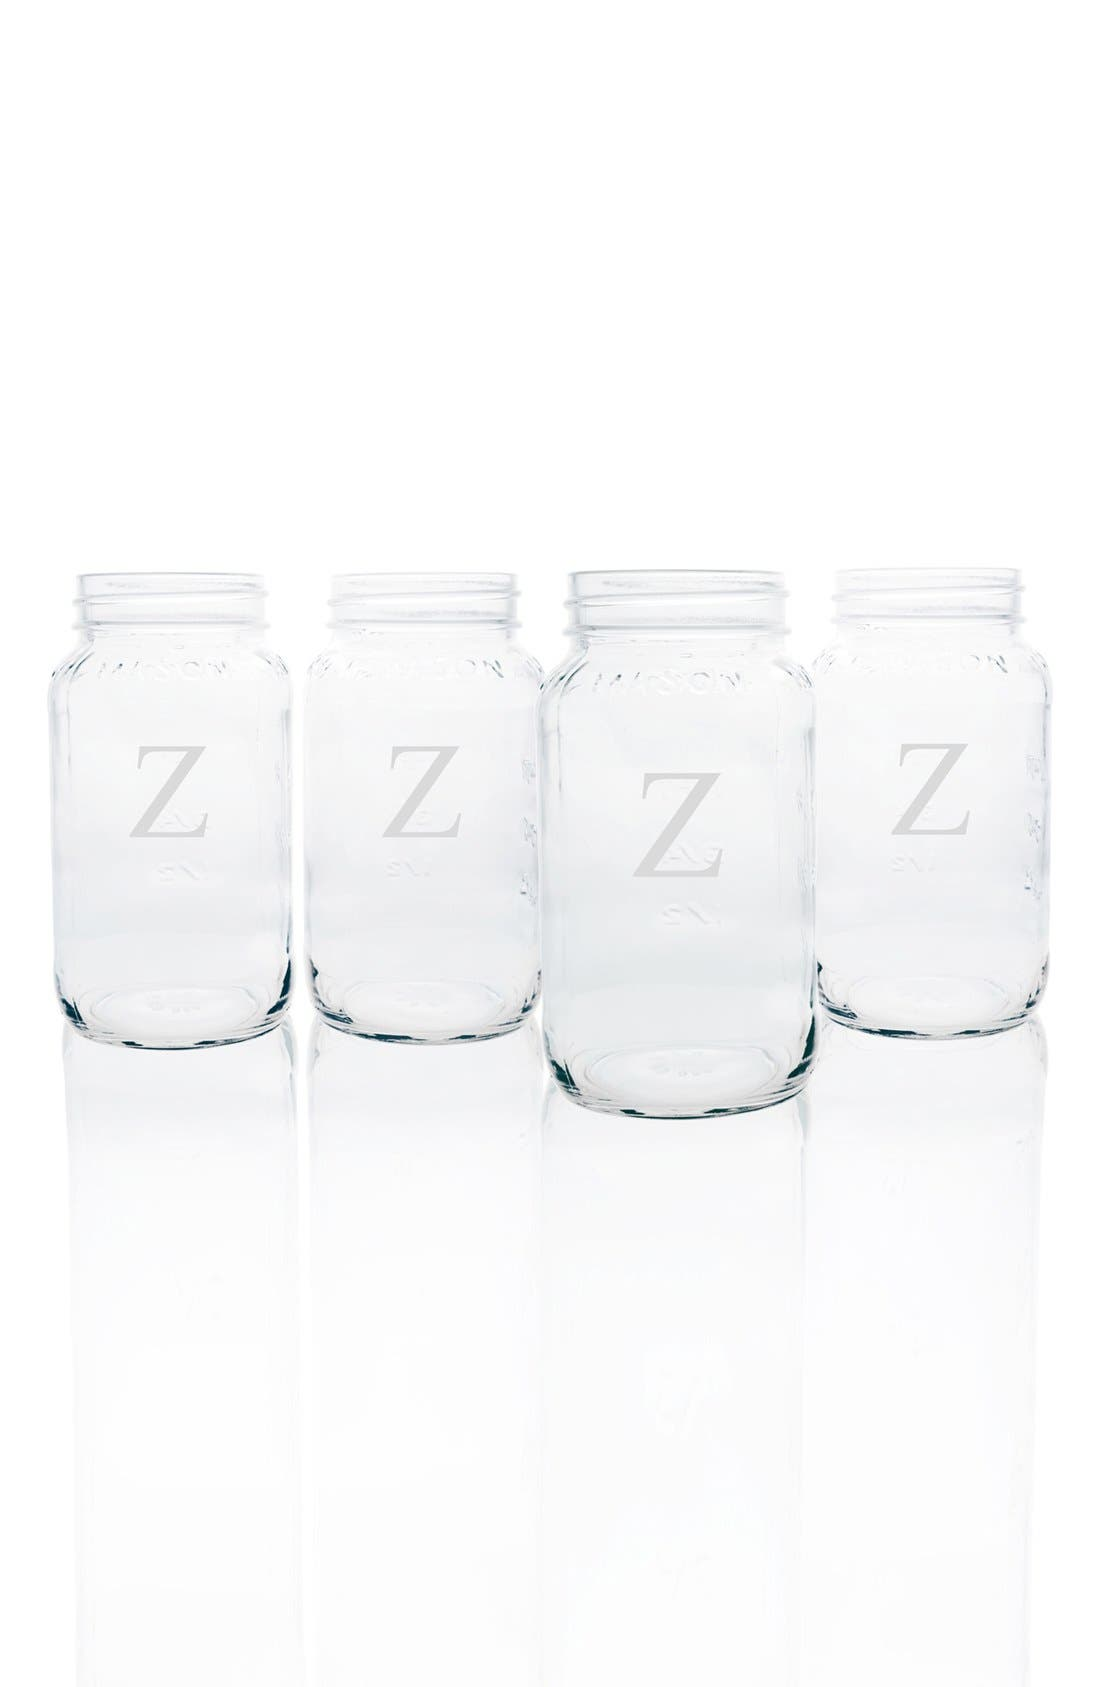 Main Image - Cathy's Concepts Monogram Glass Mason Jar Mugs (Set of 4)